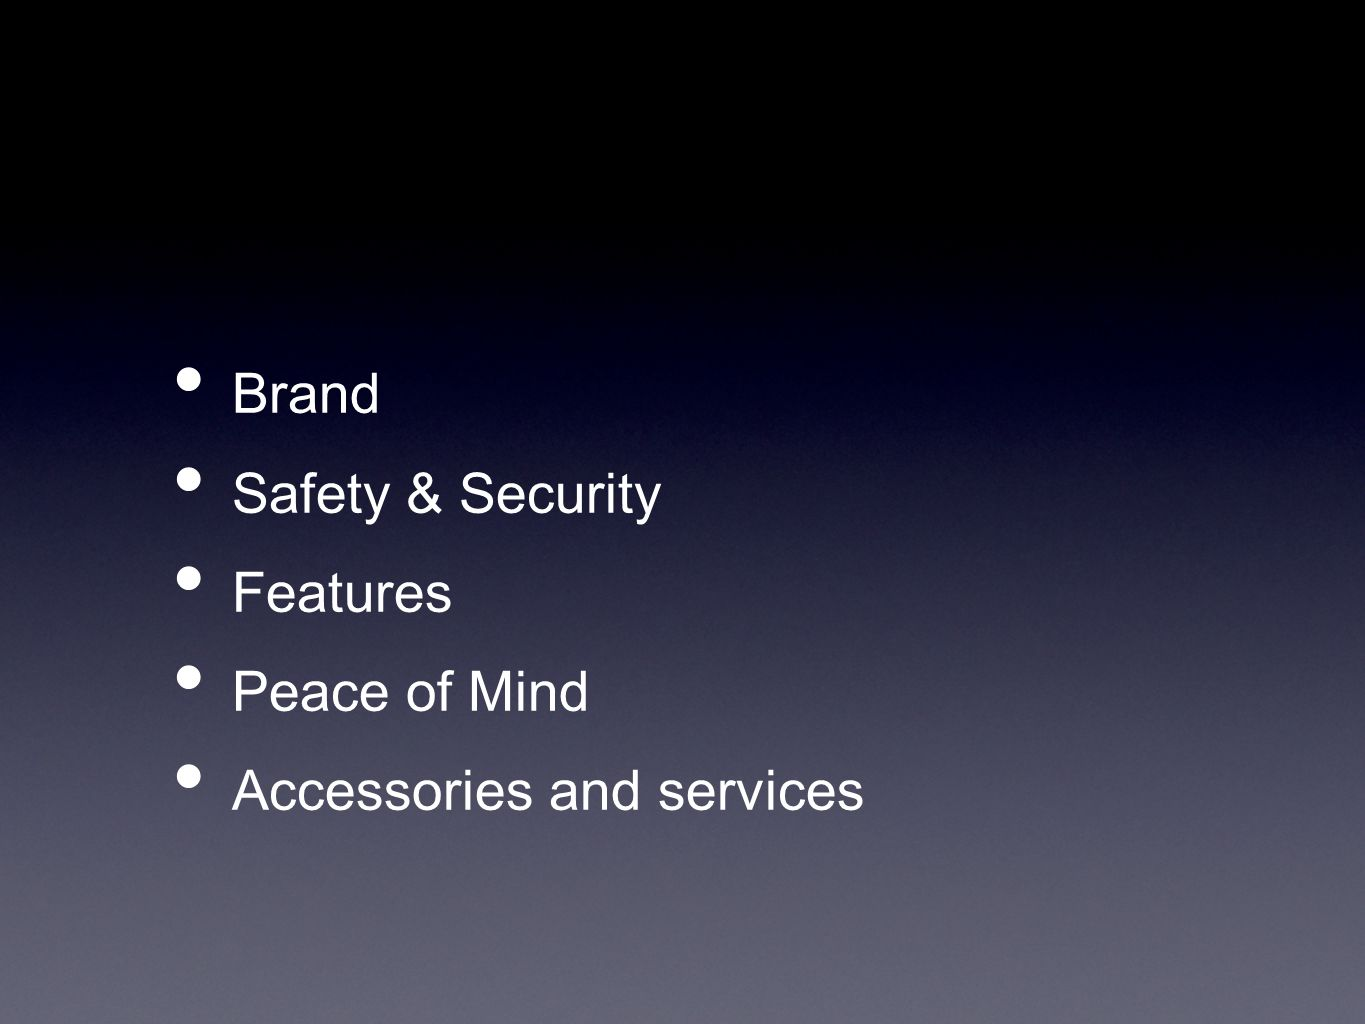 Brand Safety & Security Features Peace of Mind Accessories and services